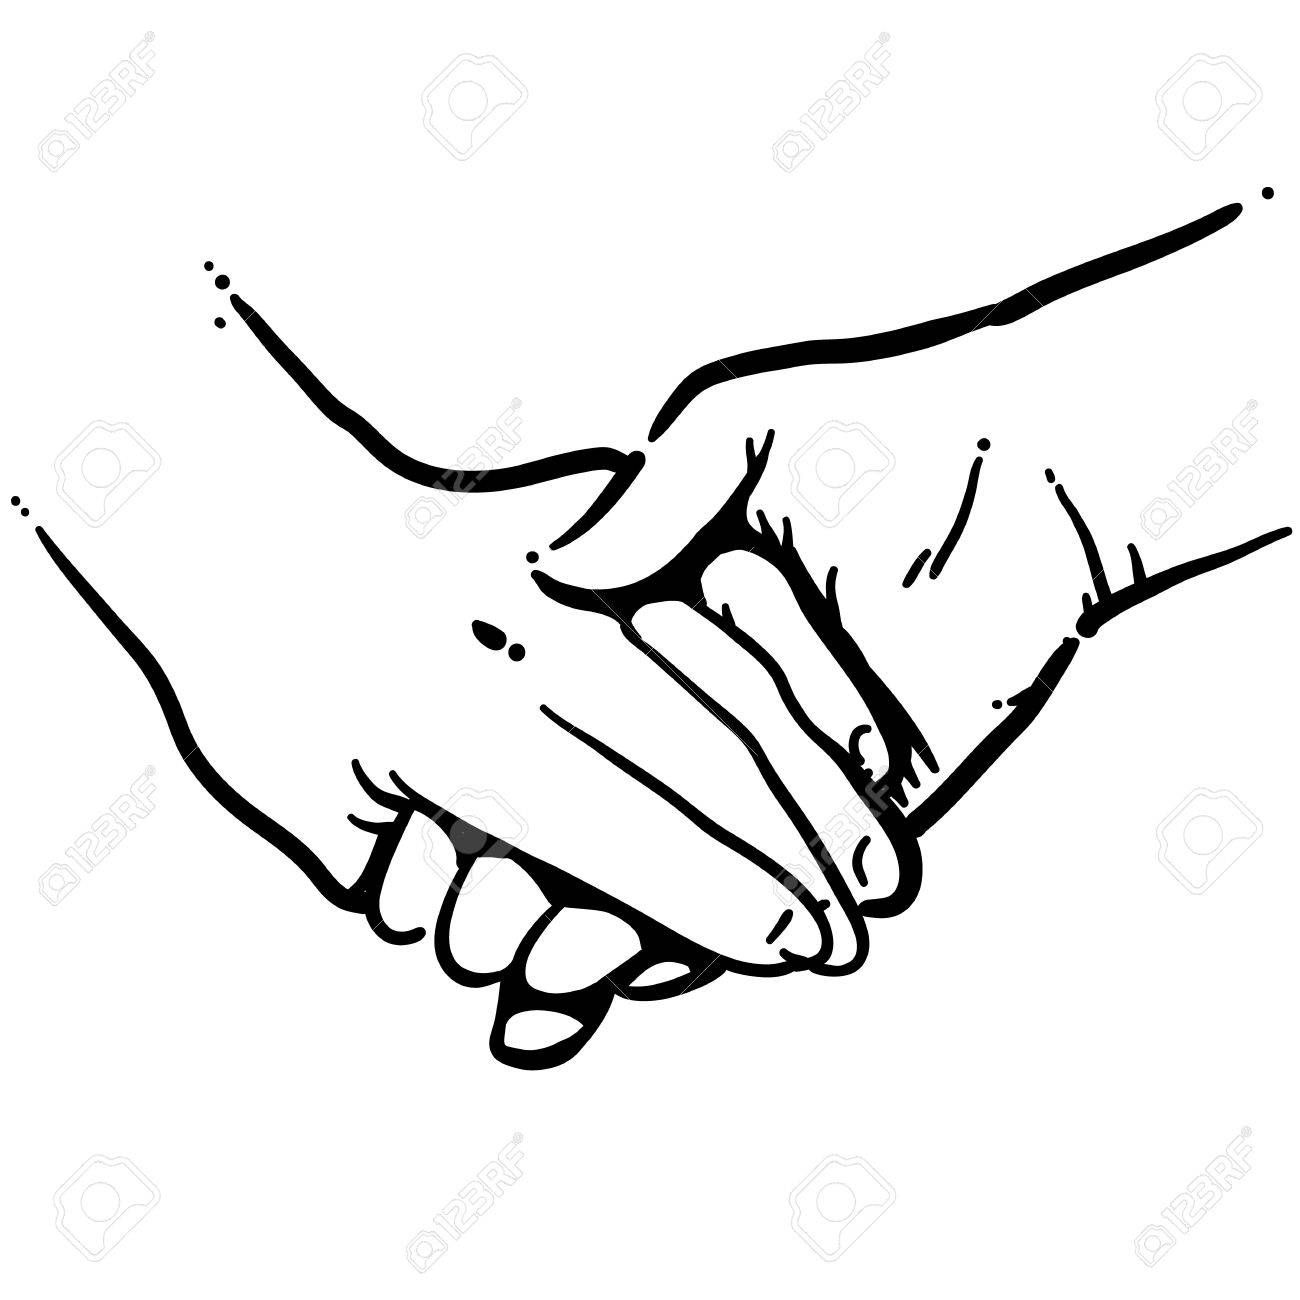 1300x1300 Holding Hands Black And White Vector Art Royalty Free Cliparts